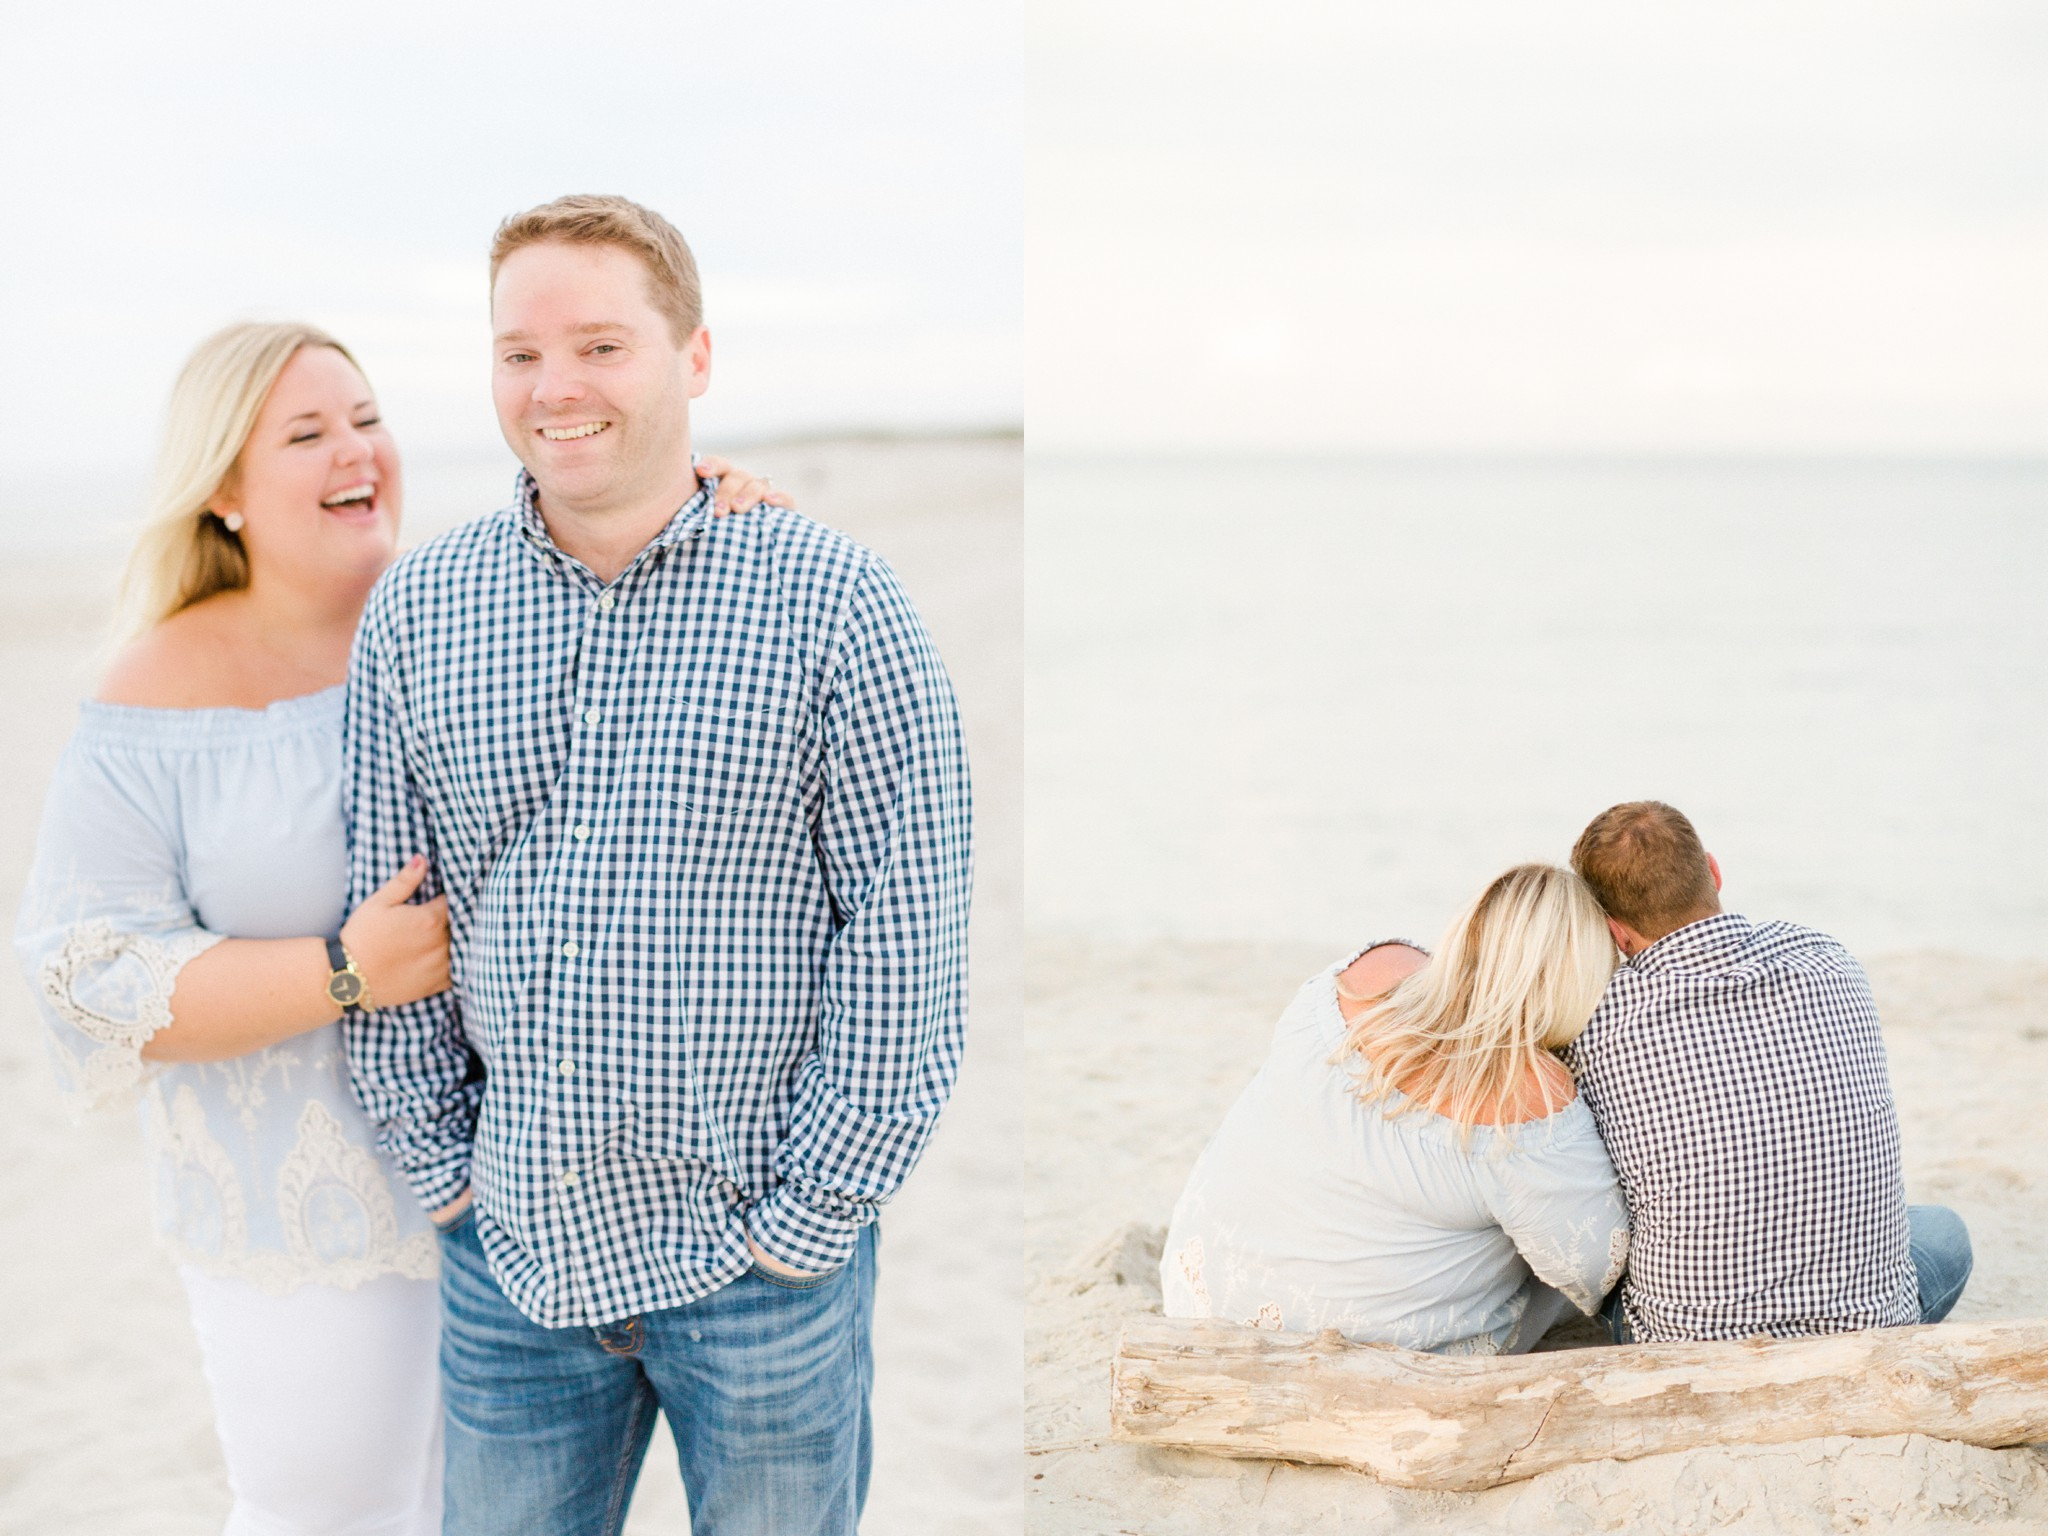 deborah_zoe_photography_engagement_session_0119.JPG